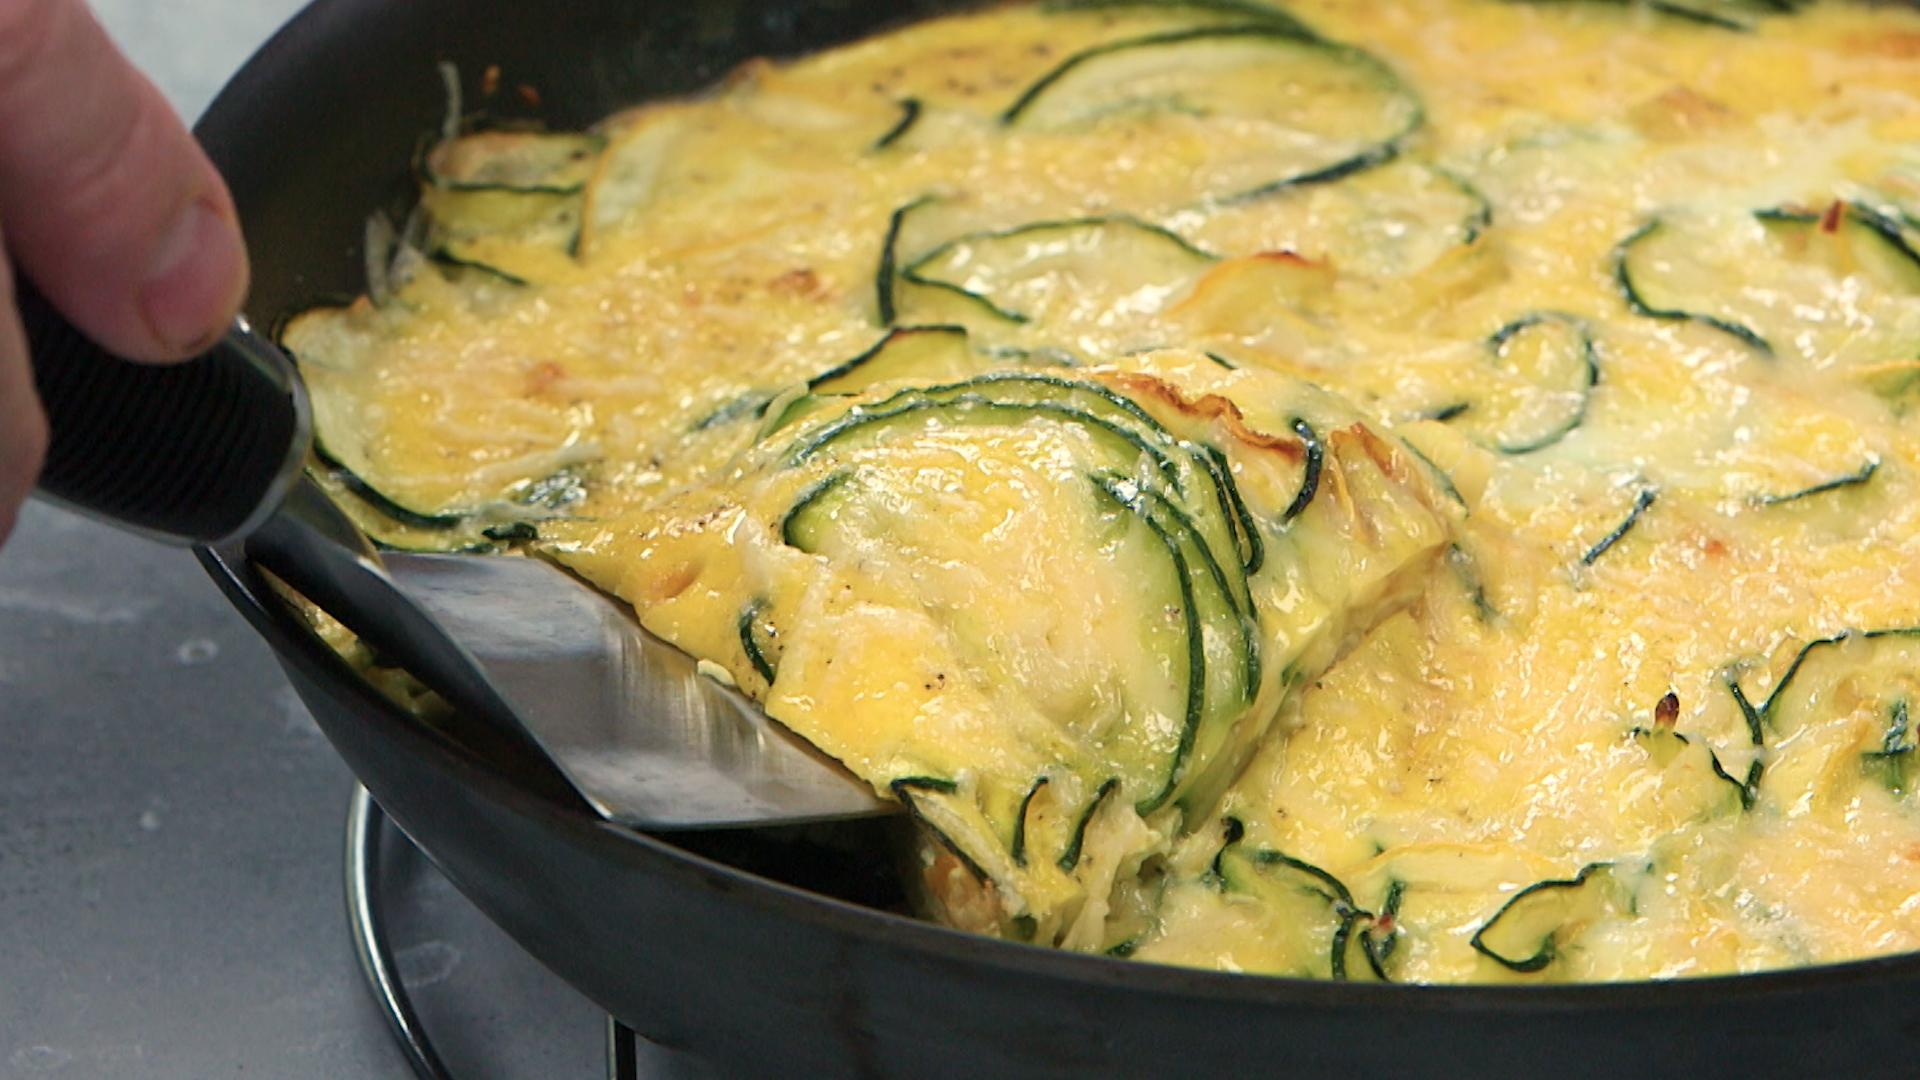 How to Make Spiralized Summer Squash Frittata with Parmesan - Cooking